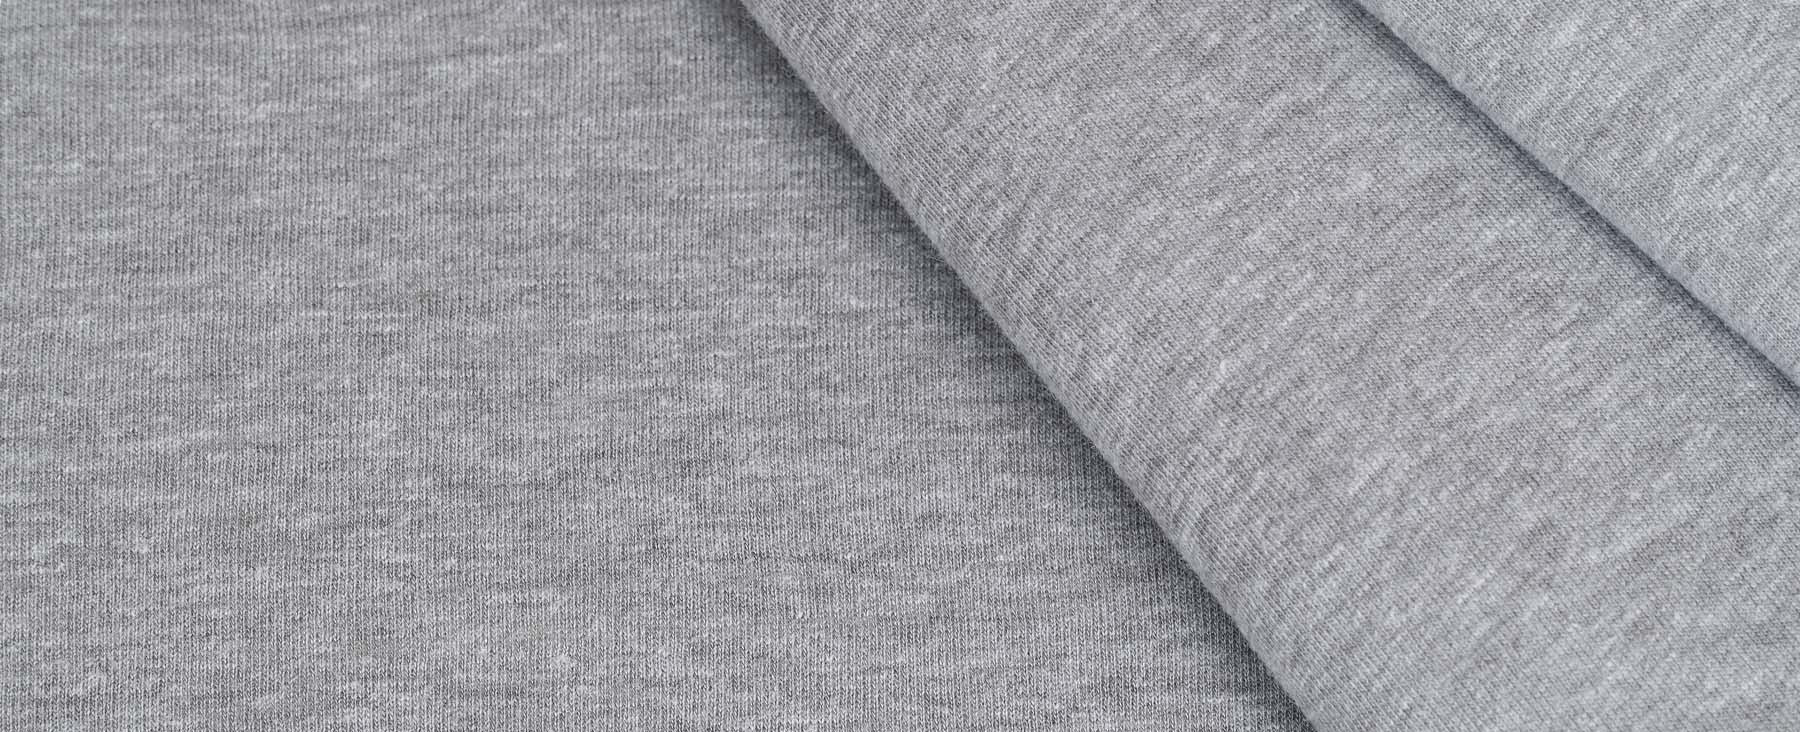 Jersey Fabric in Light Heather Grey